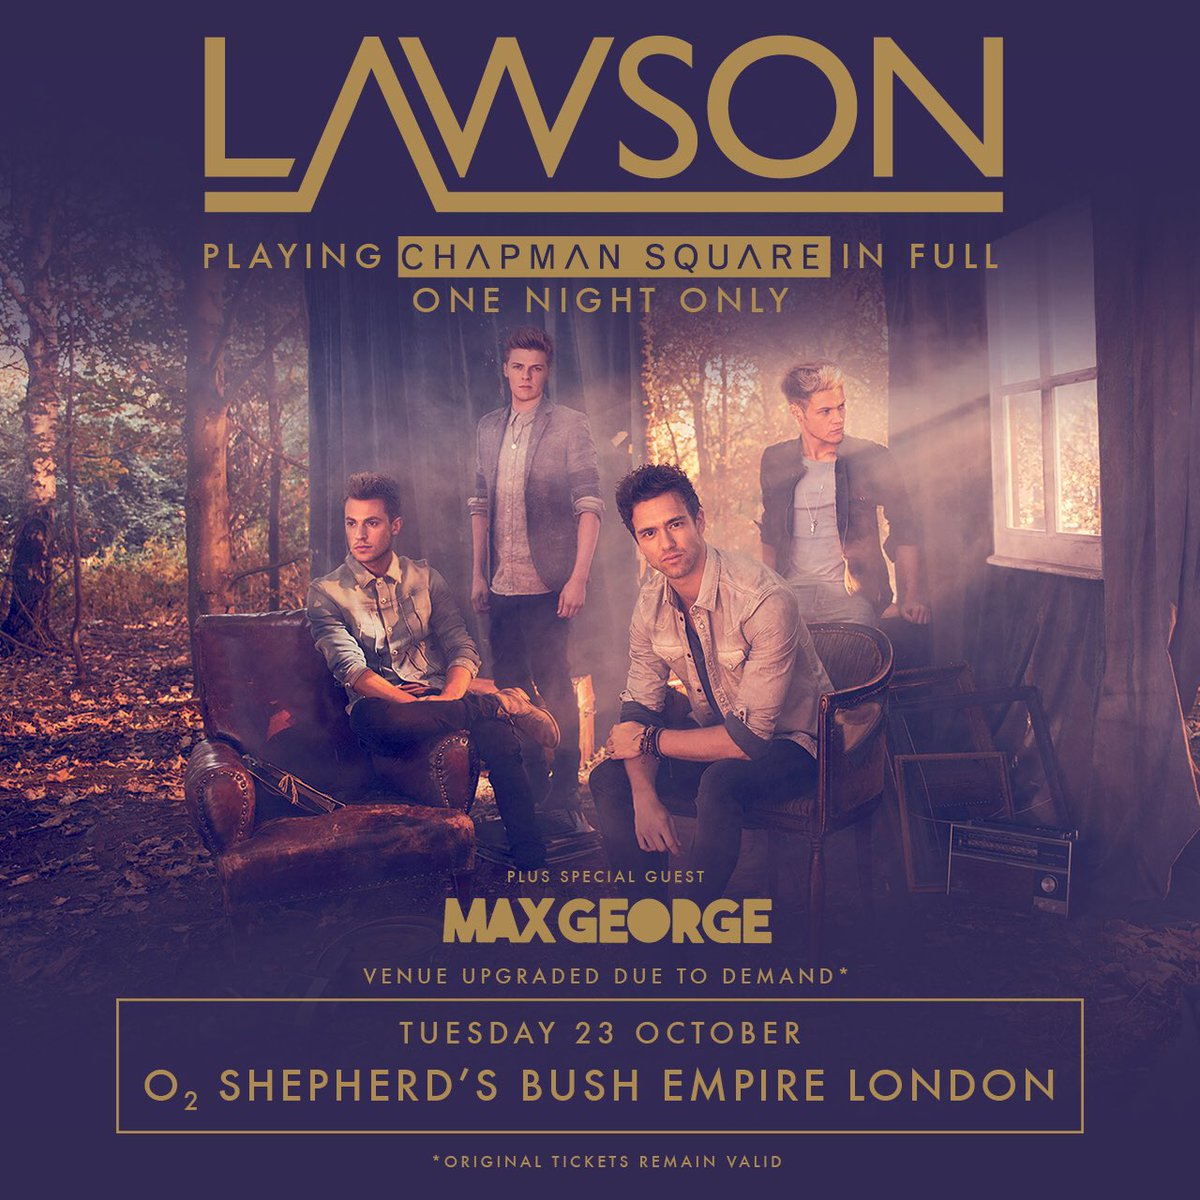 Buzzing to perform at the @LawsonOfficial lads London show on October 23rd. Get your tickets tomorrow from 9am: https://t.co/jS0jRGxpt6